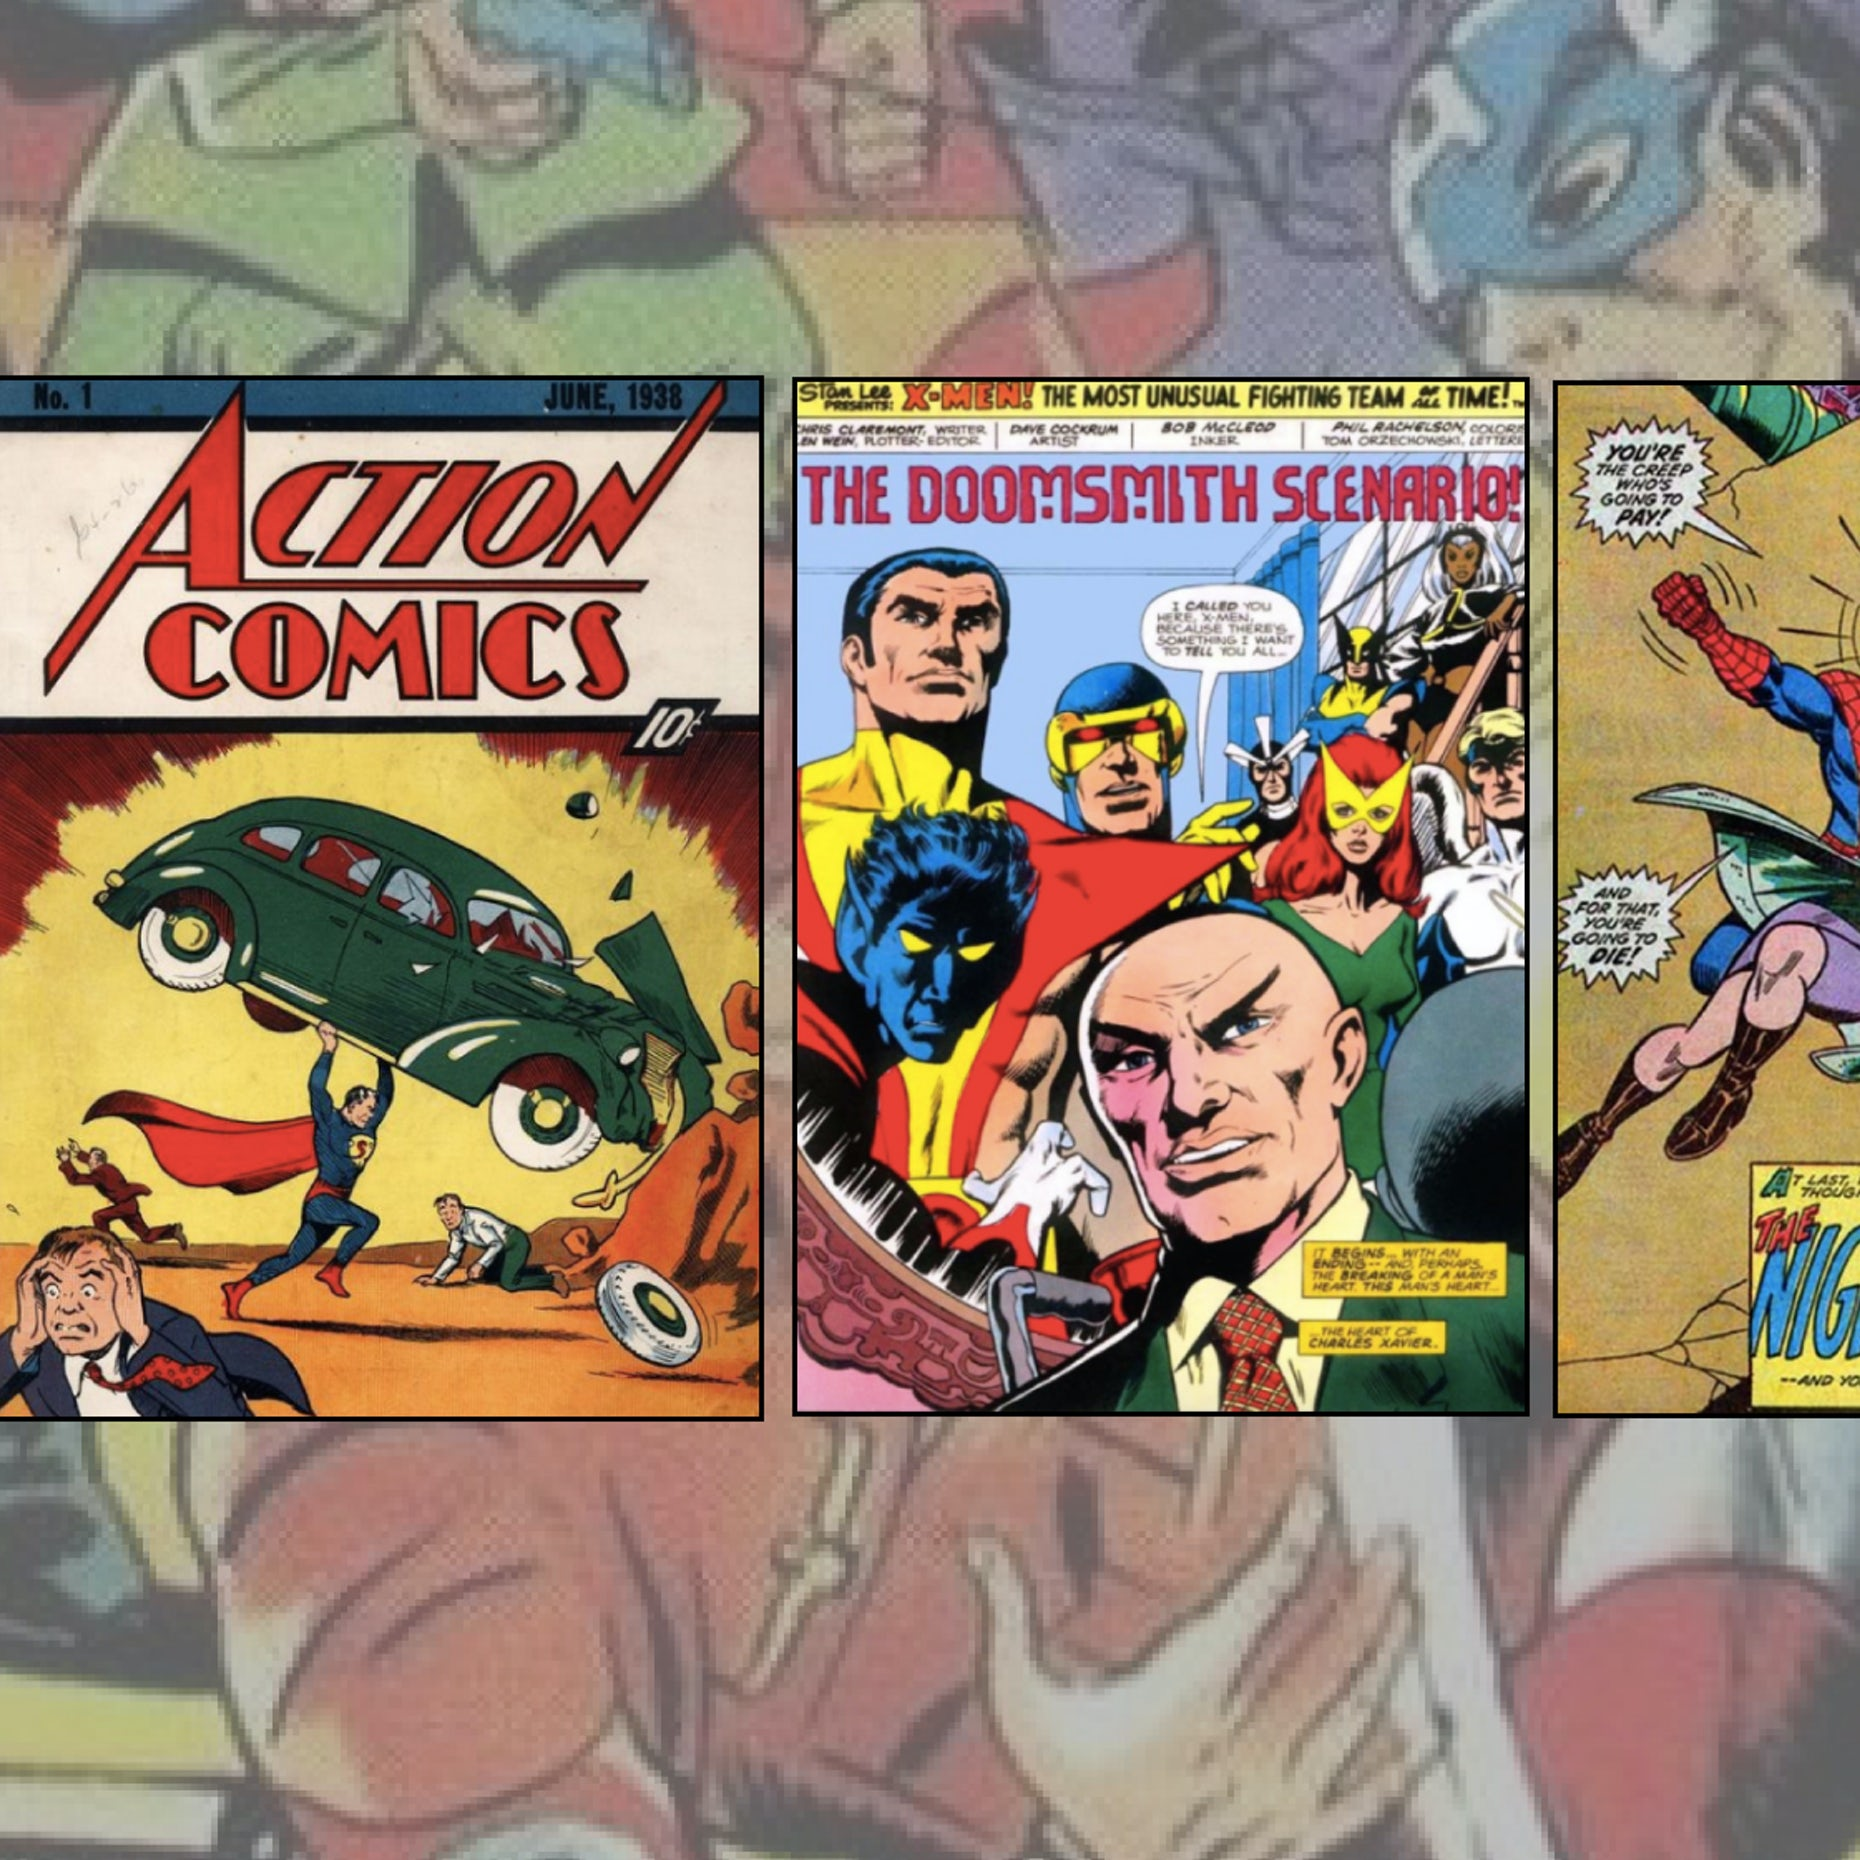 a258d953584d2 The amazing stylistic history of comic books - 99designs